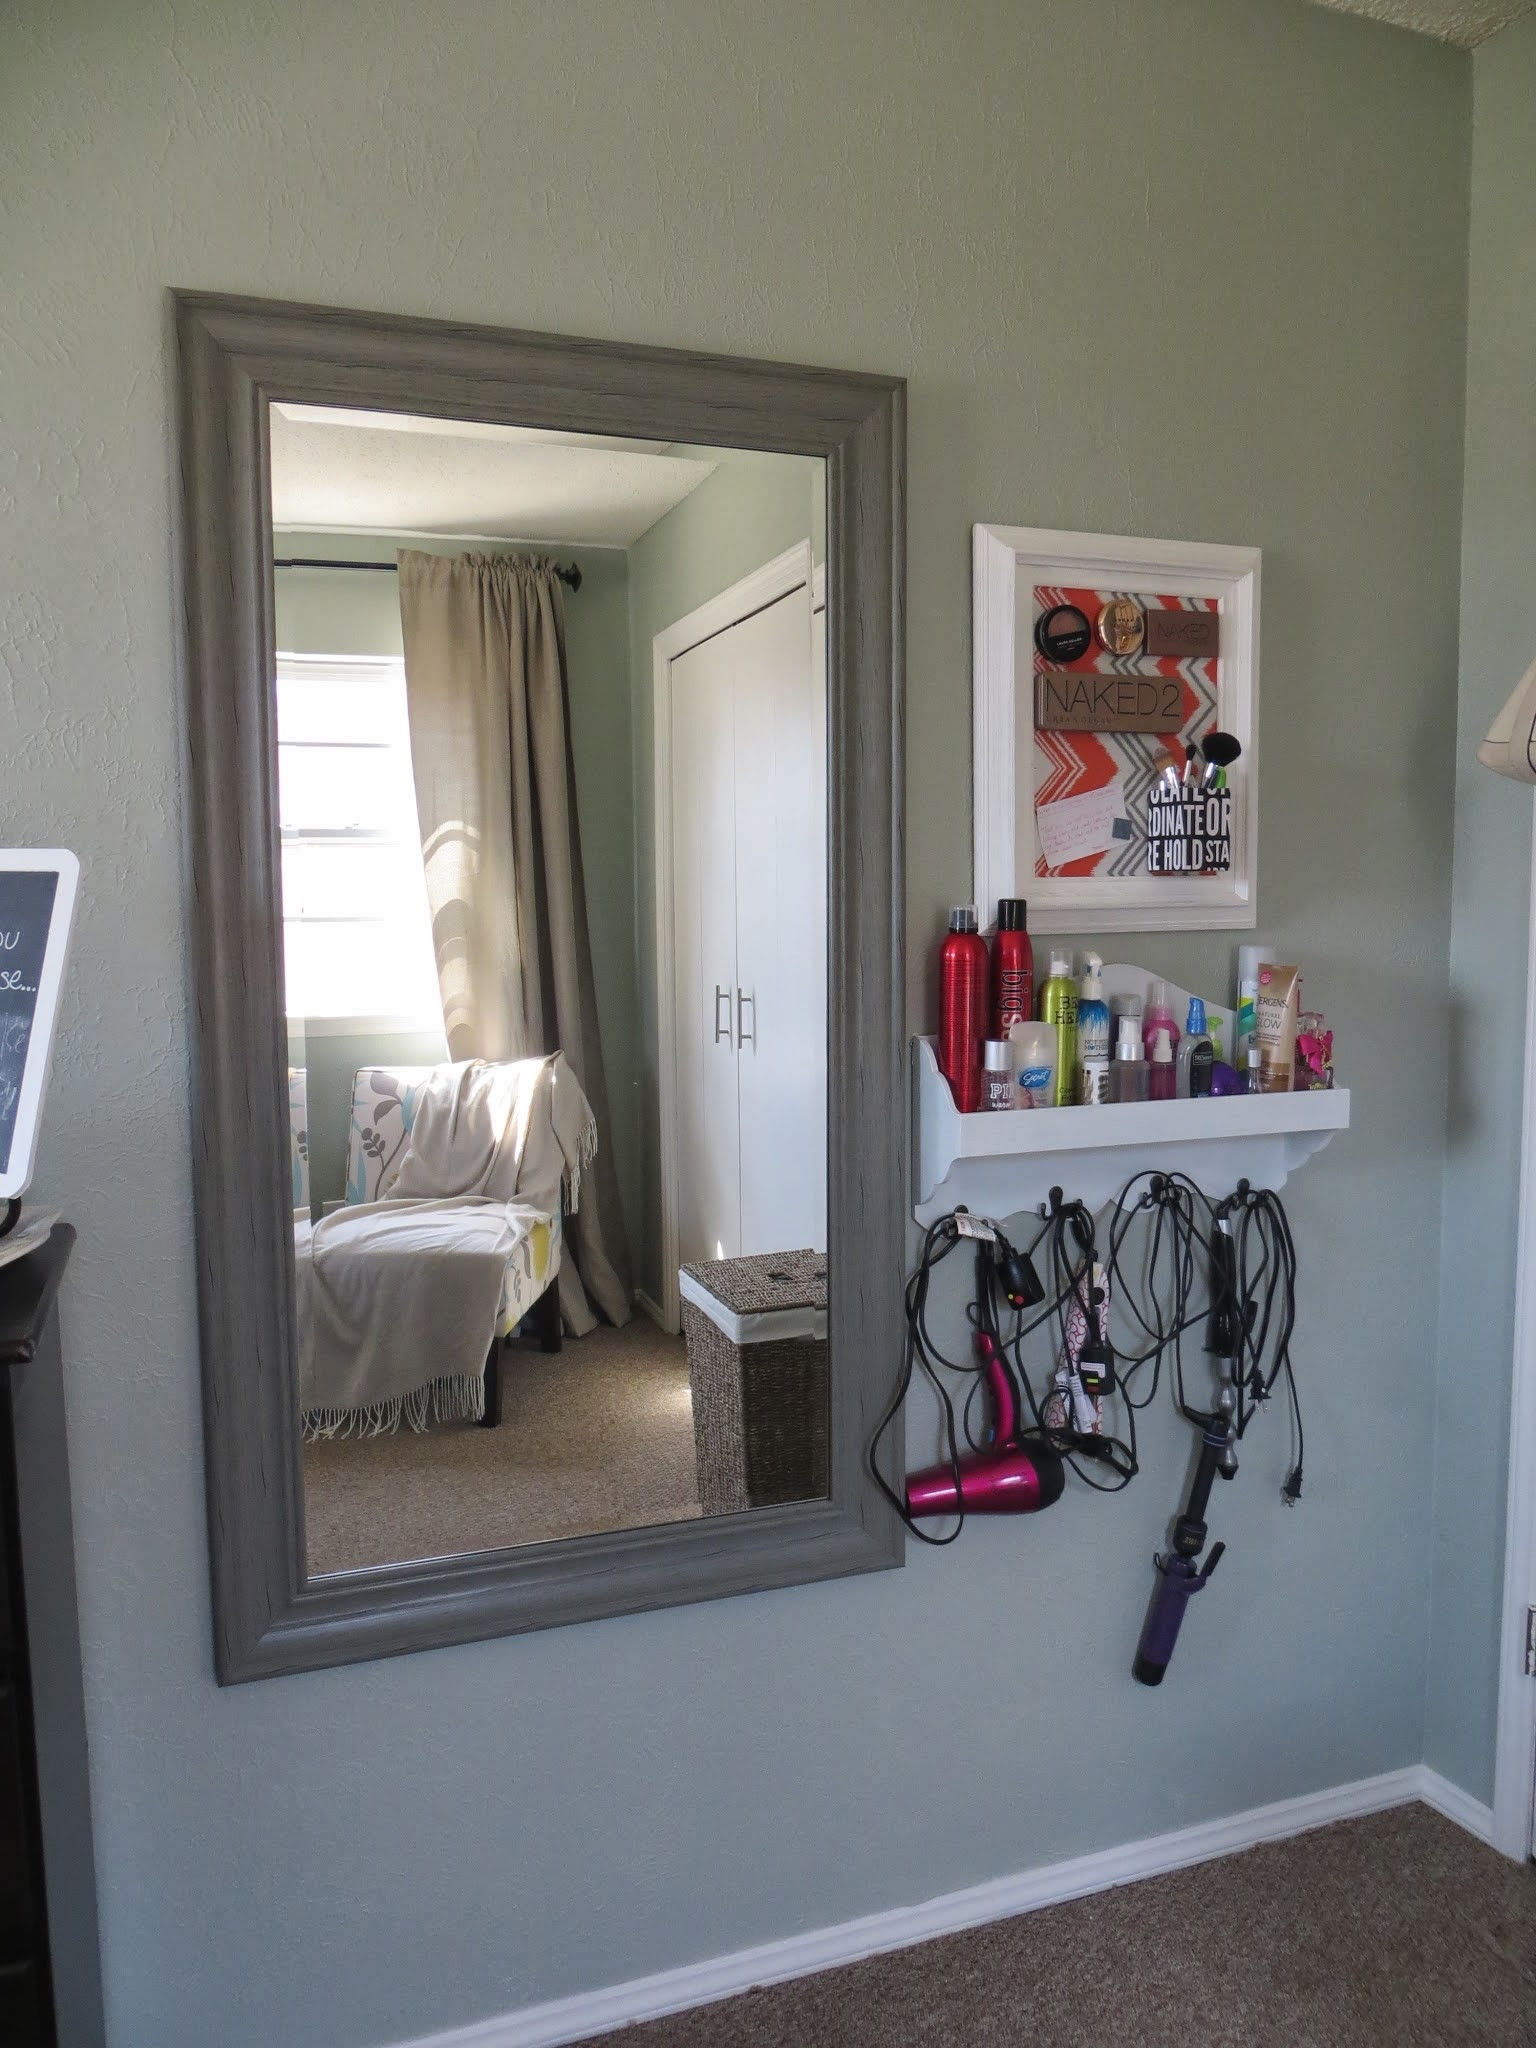 Making All Things Beautiful Room Makeover